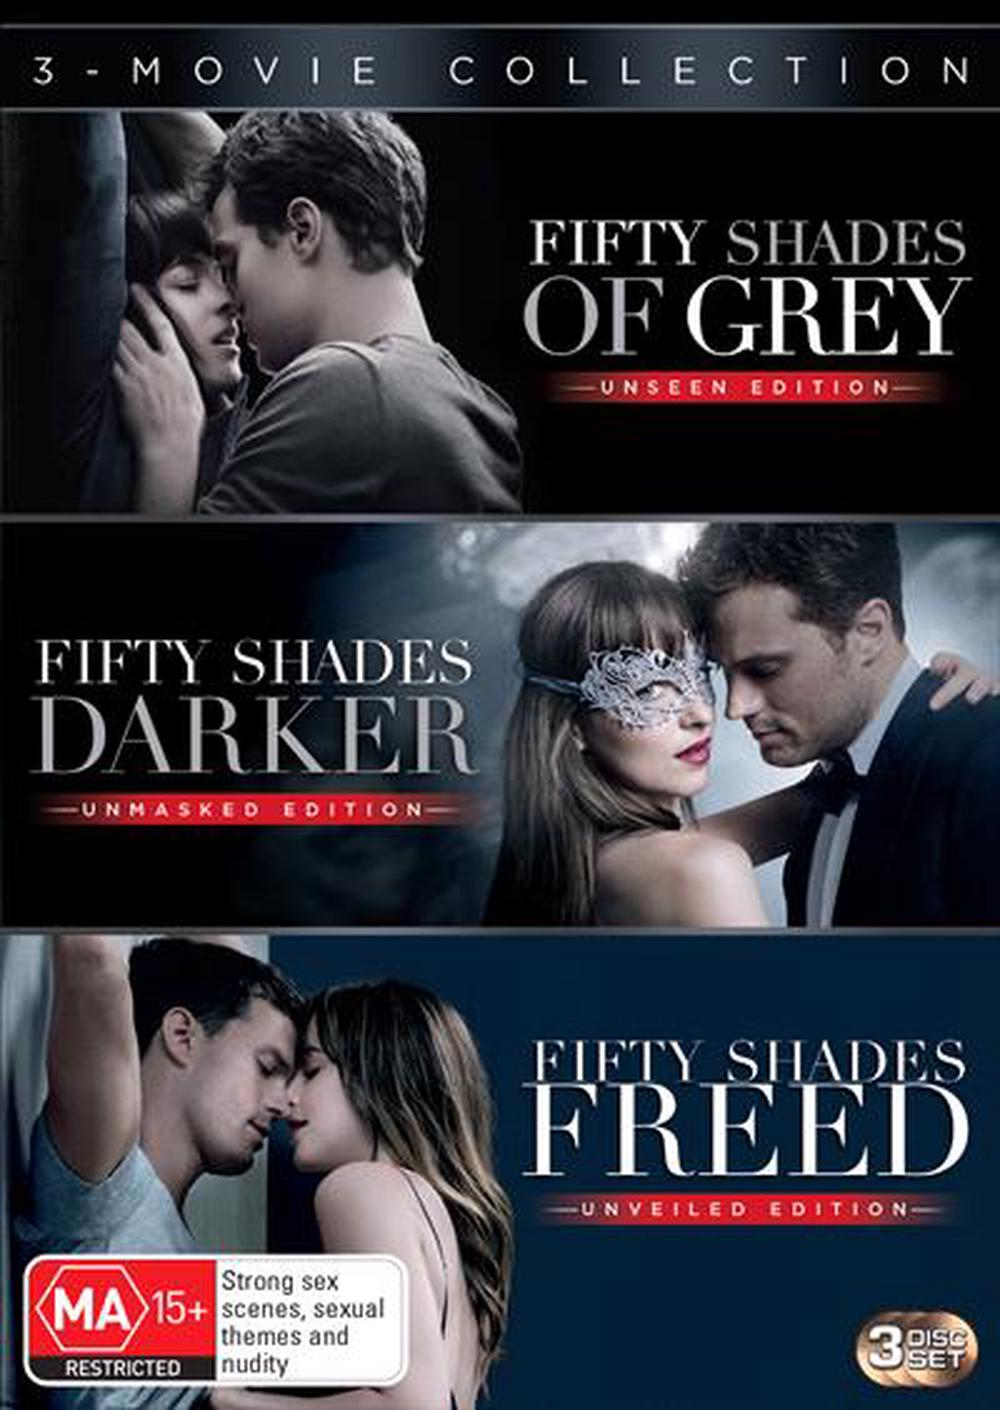 Fifty Shades Of Grey Fifty Shades Darker Fifty Shades Freed Triple Pack Dvd Buy Online At The Nile